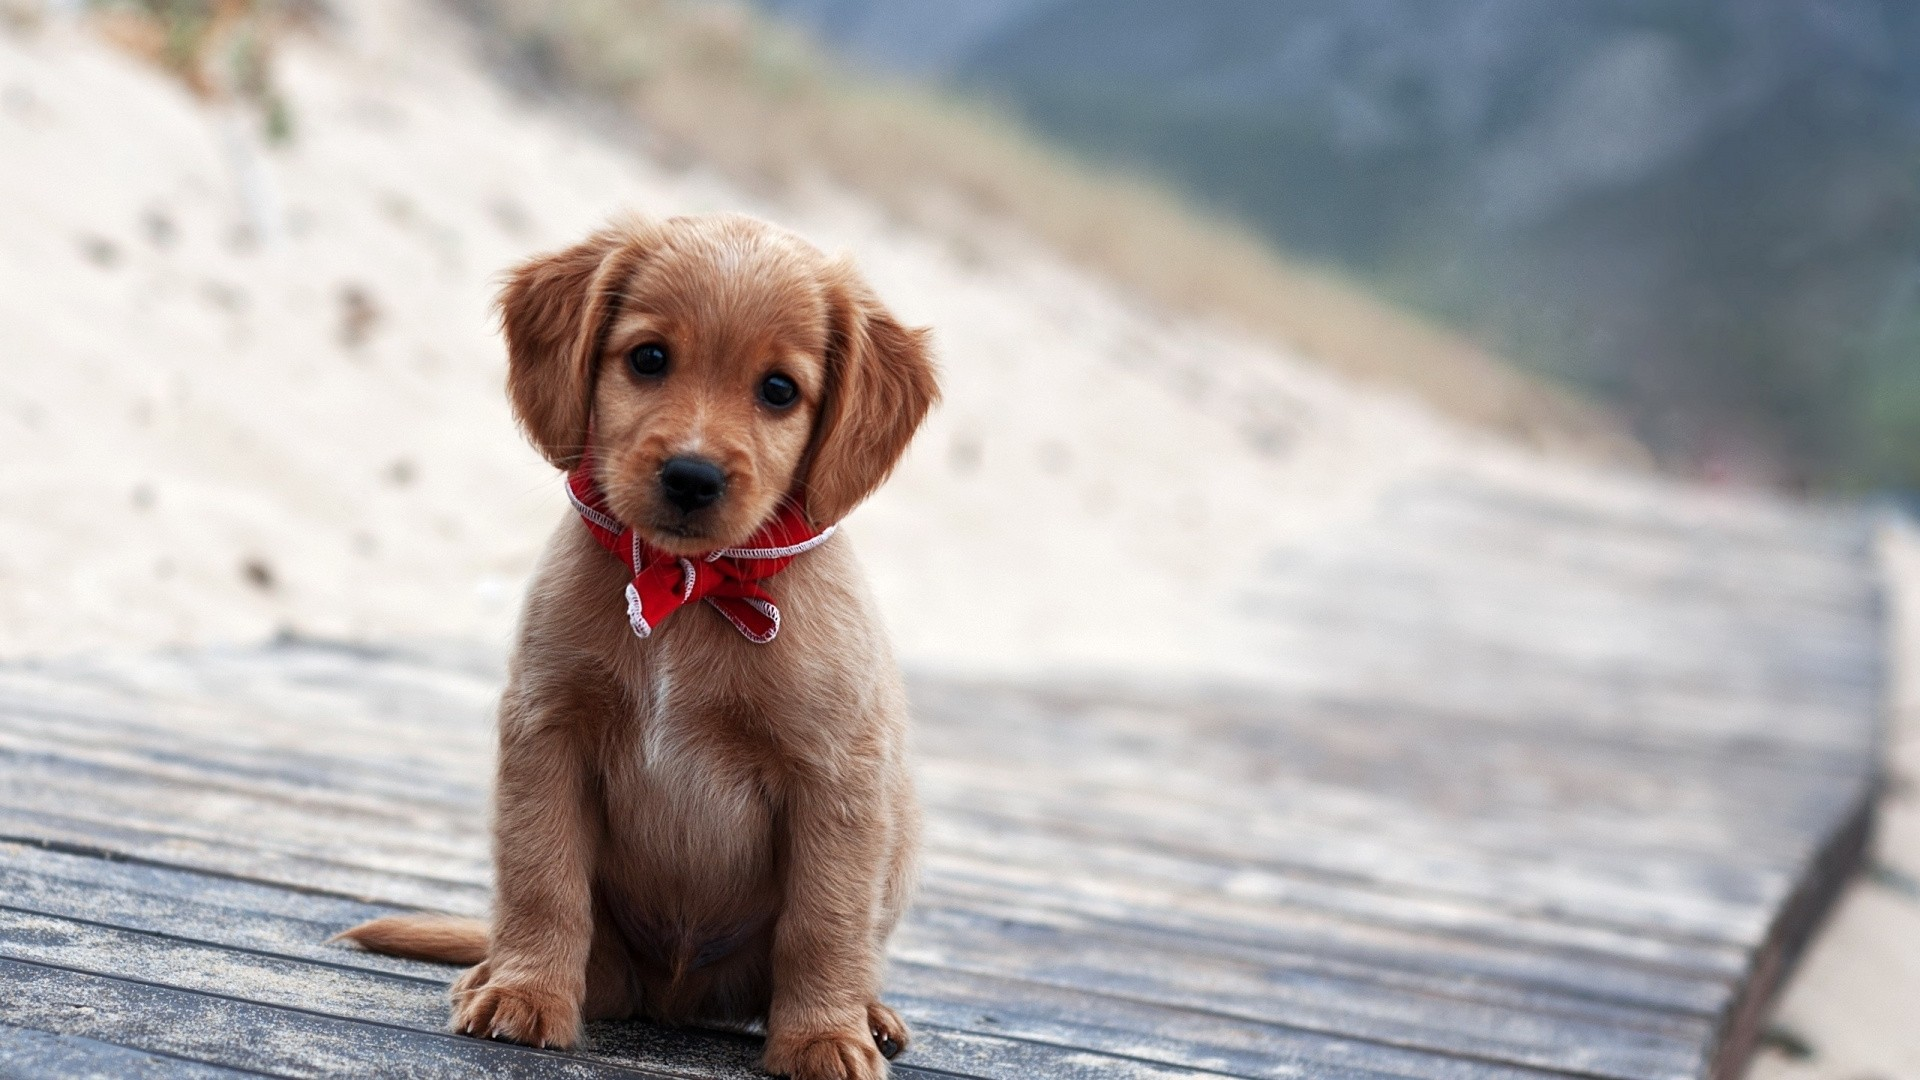 Cute Animal Picture